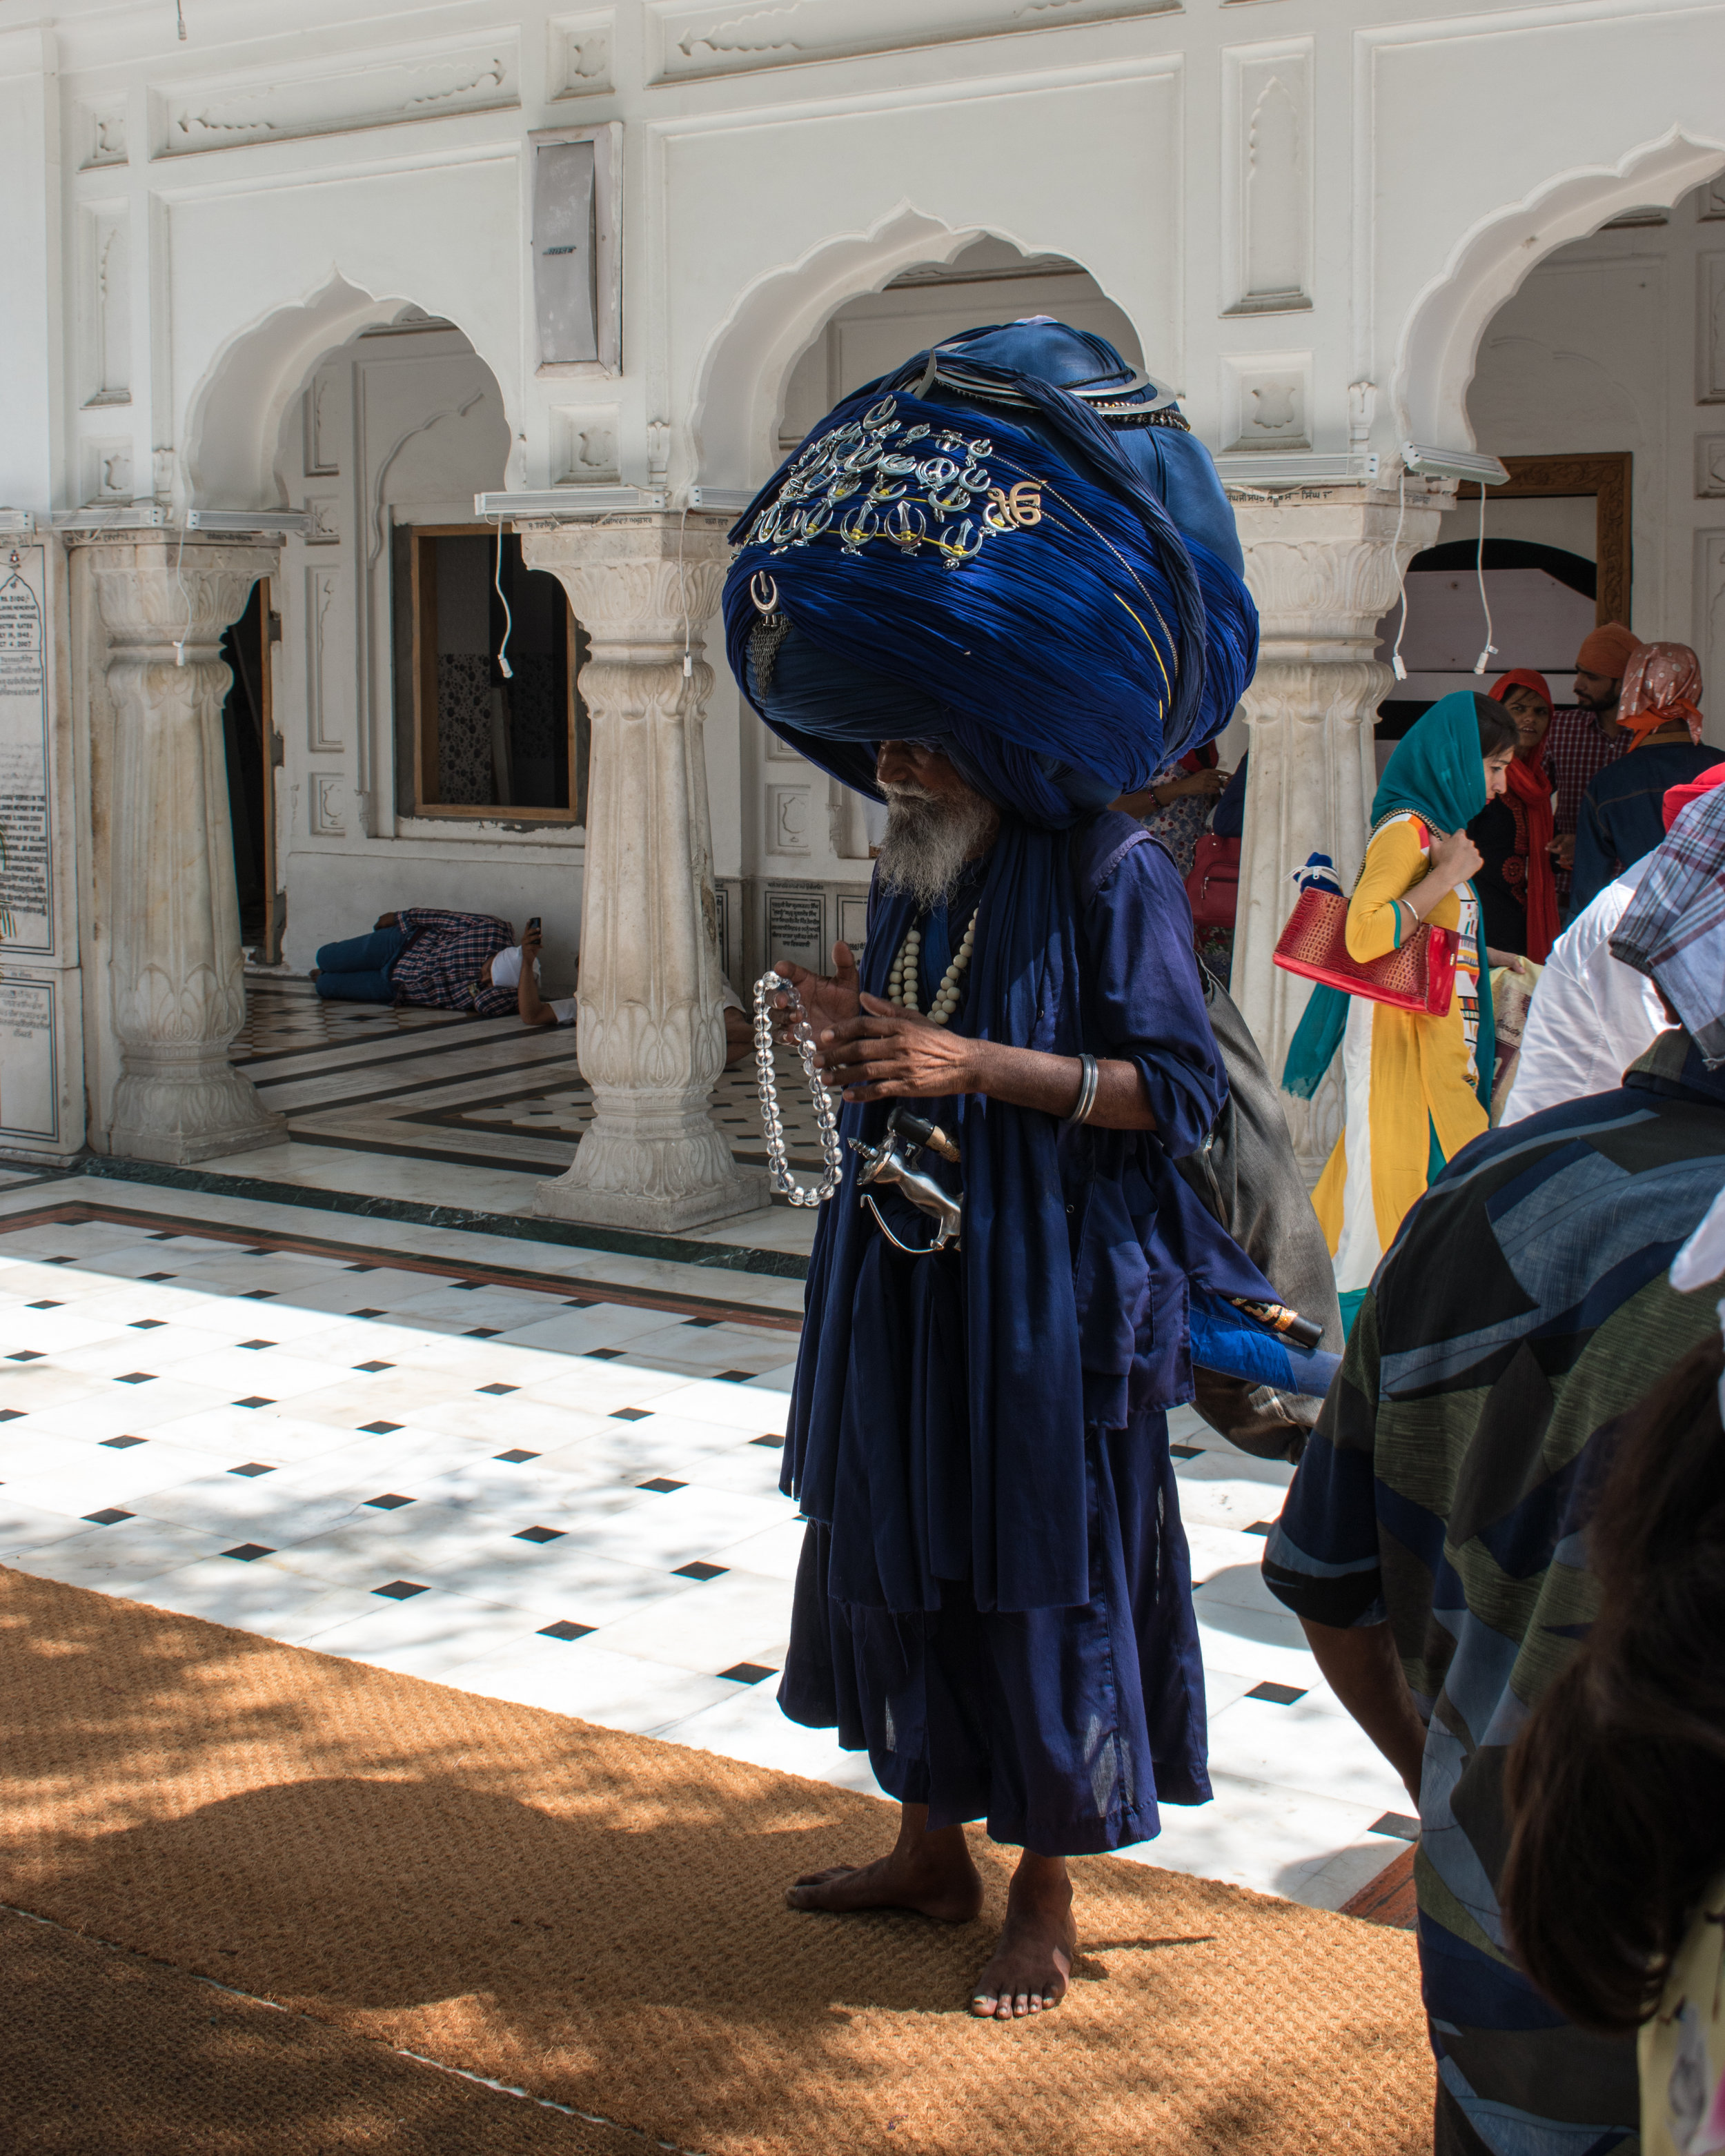 A Sikh Man At The Golden Temple in Amritsar, India